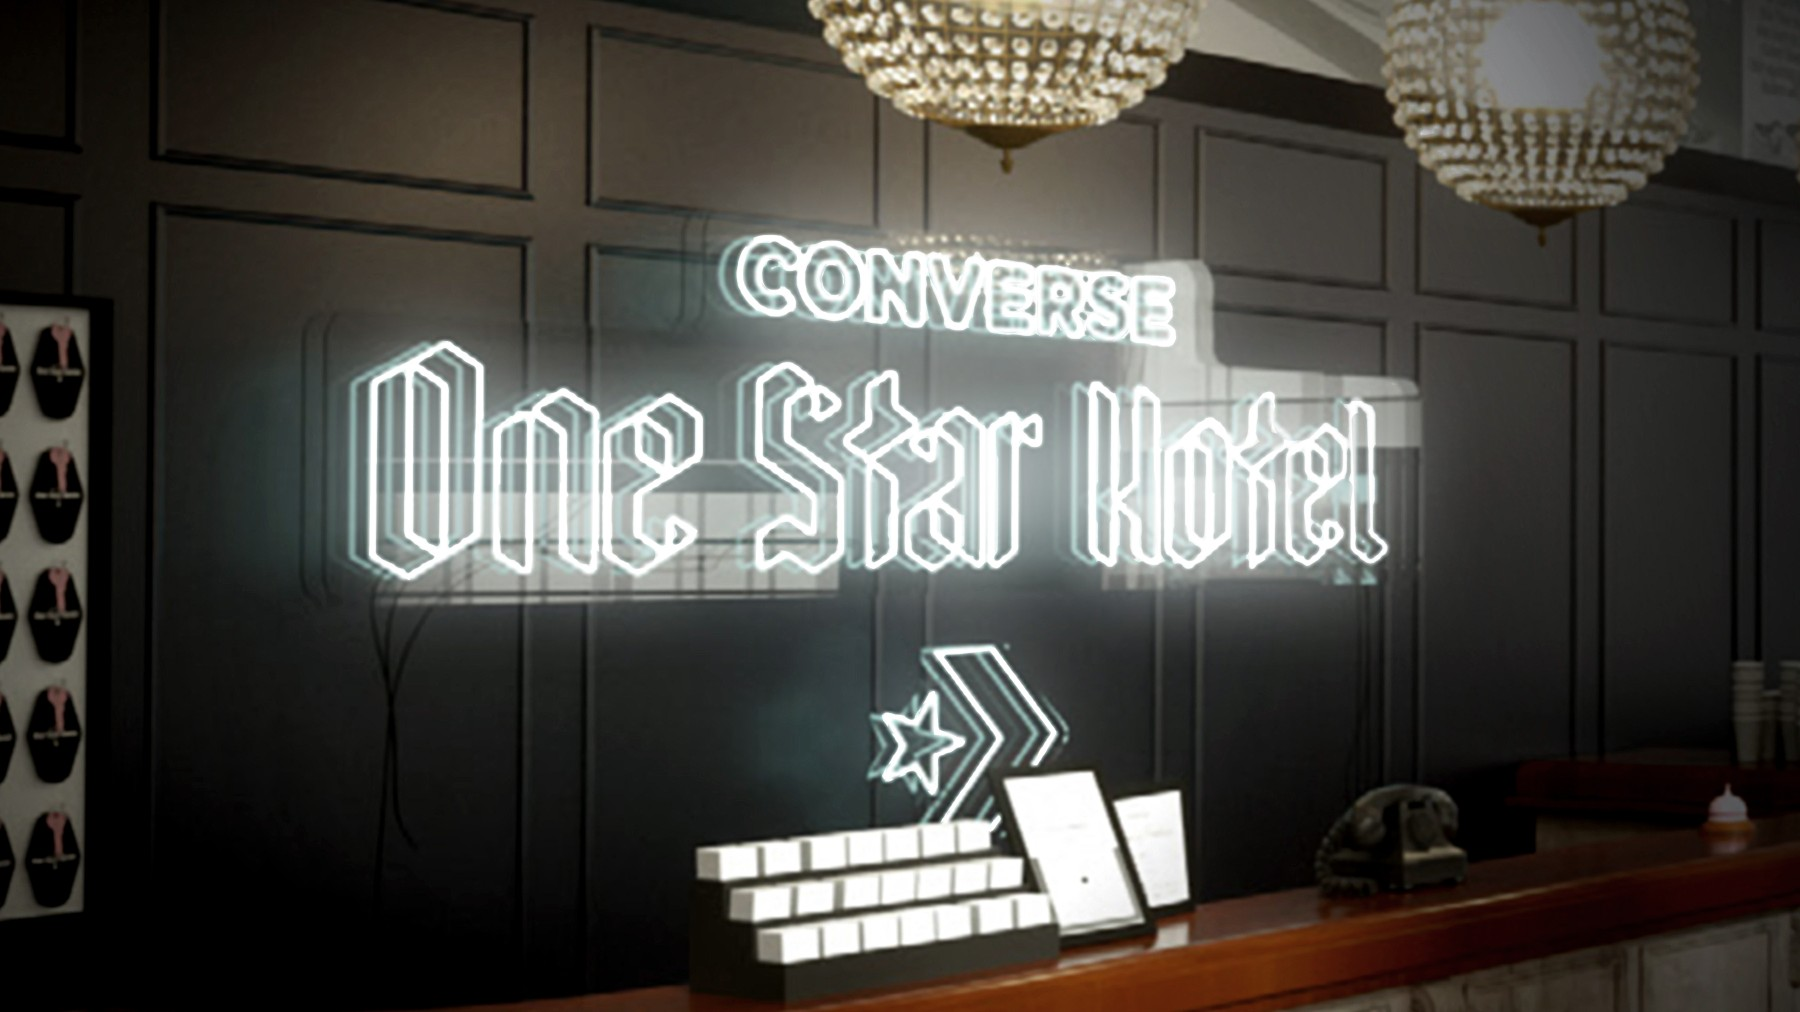 Introducing the Converse One Star Hotel